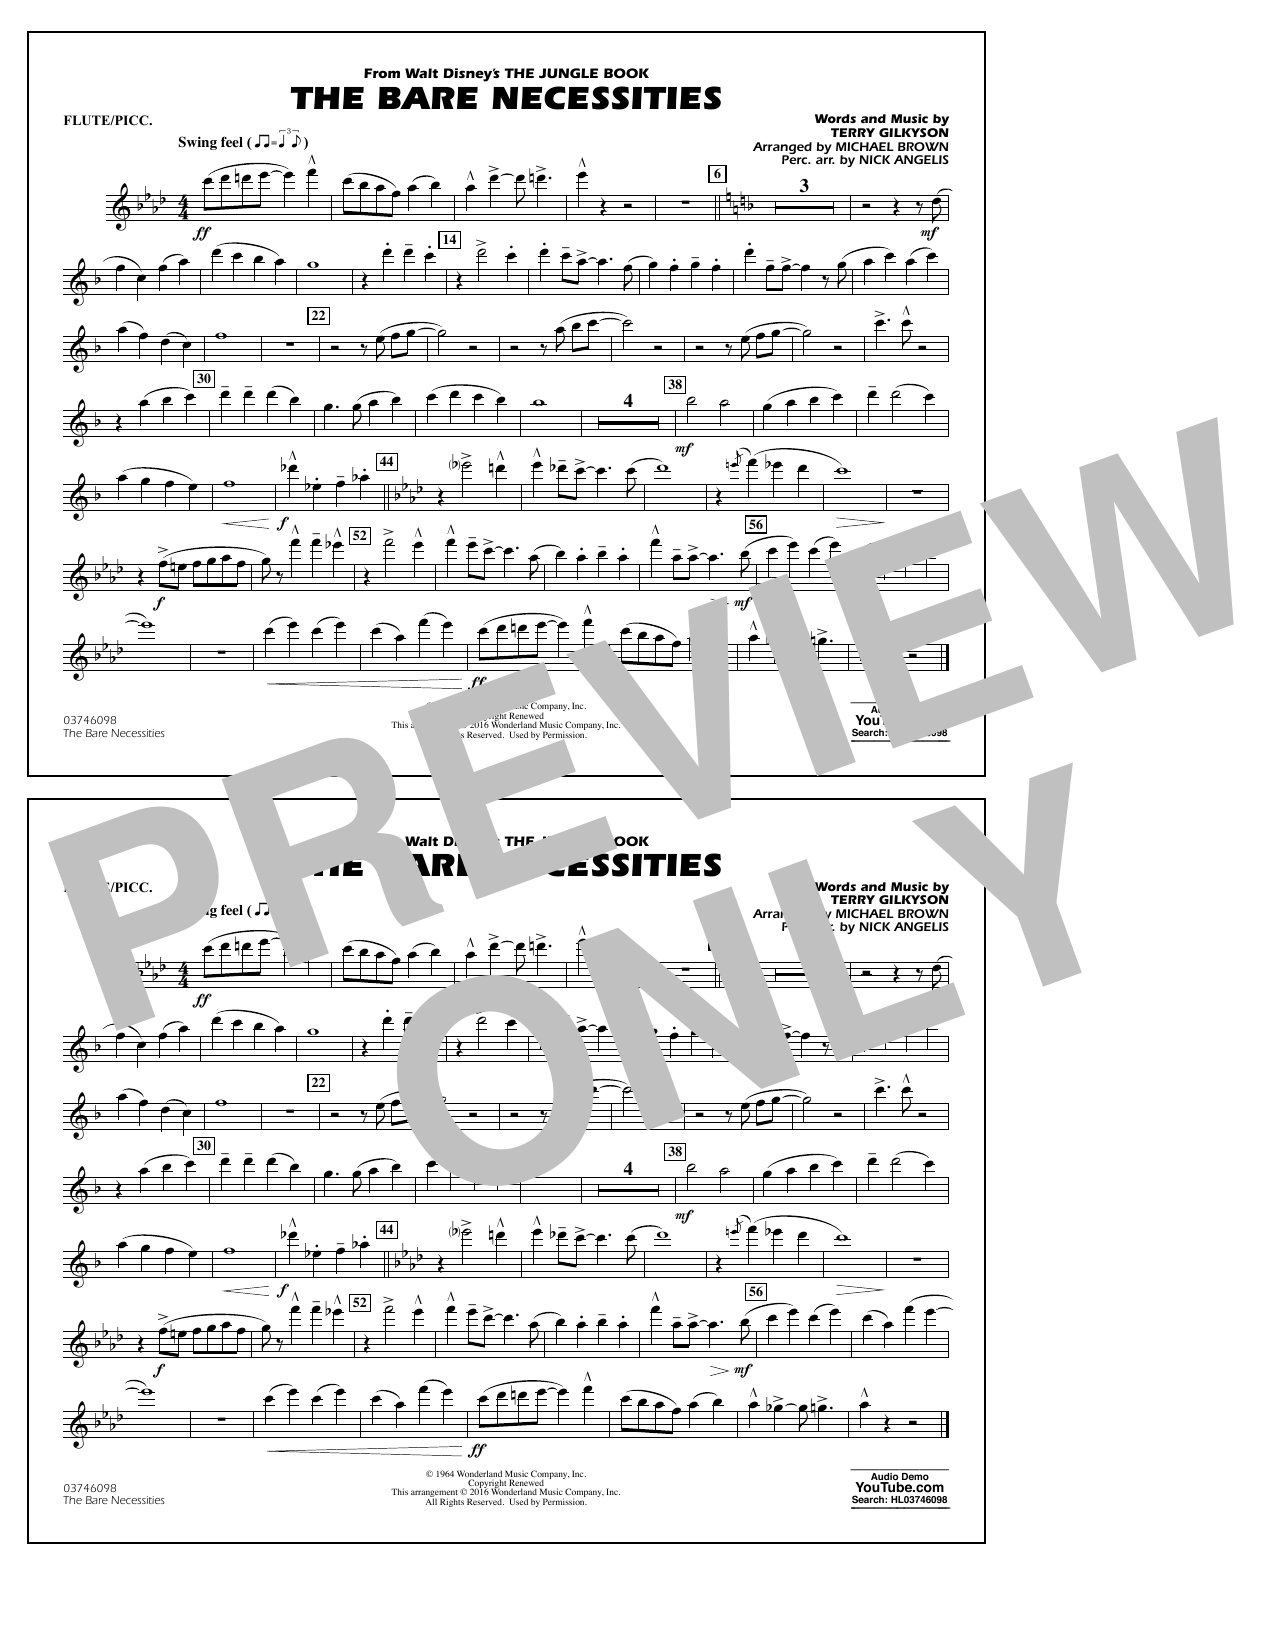 The Bare Necessities (from The Jungle Book) - Flute/Piccolo Sheet Music